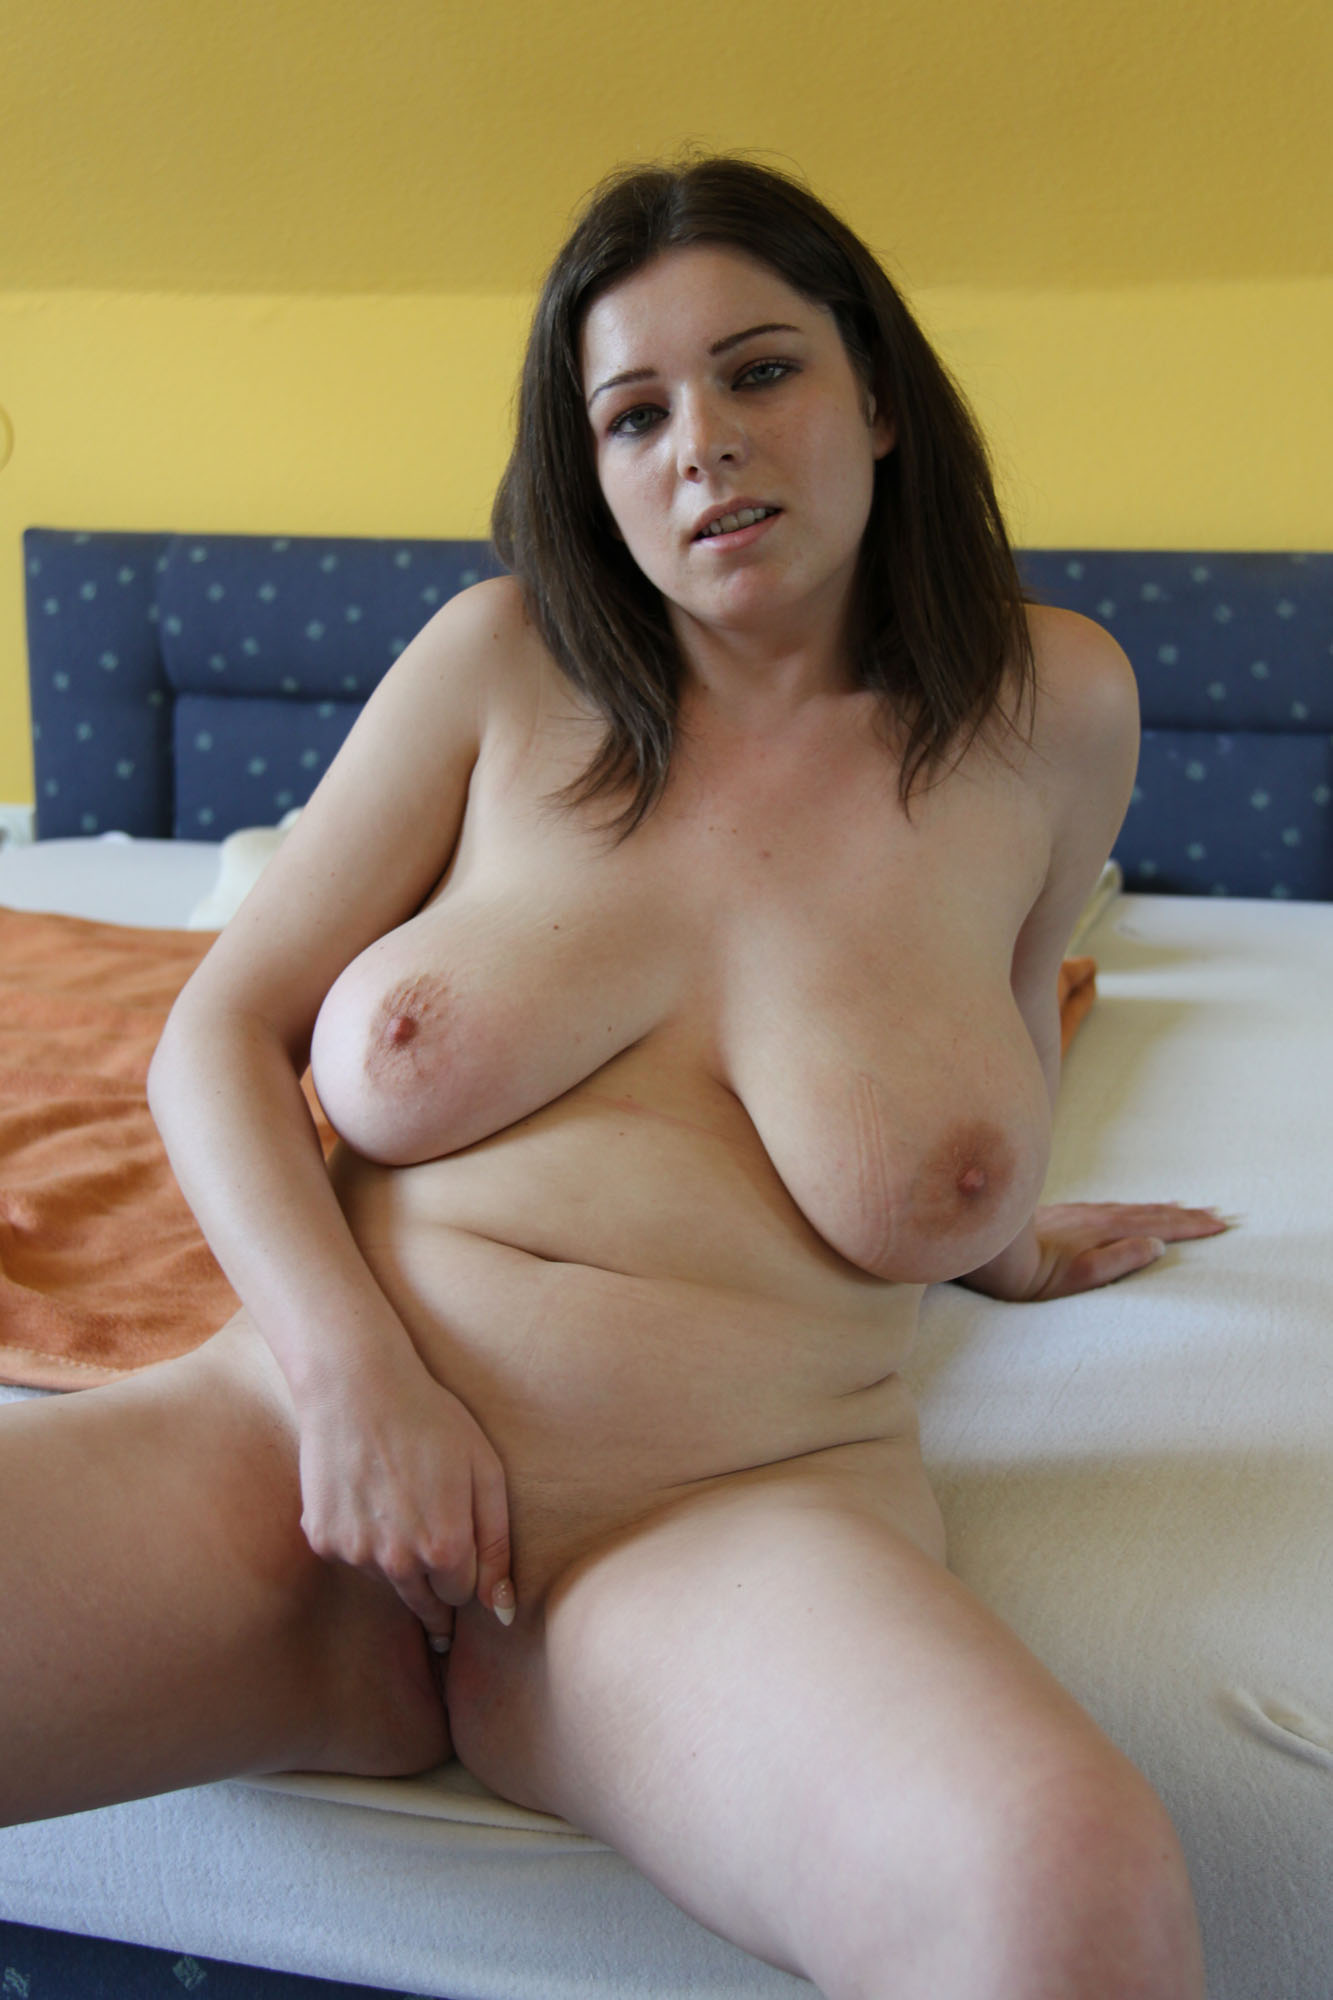 Hot amateur chubby girl